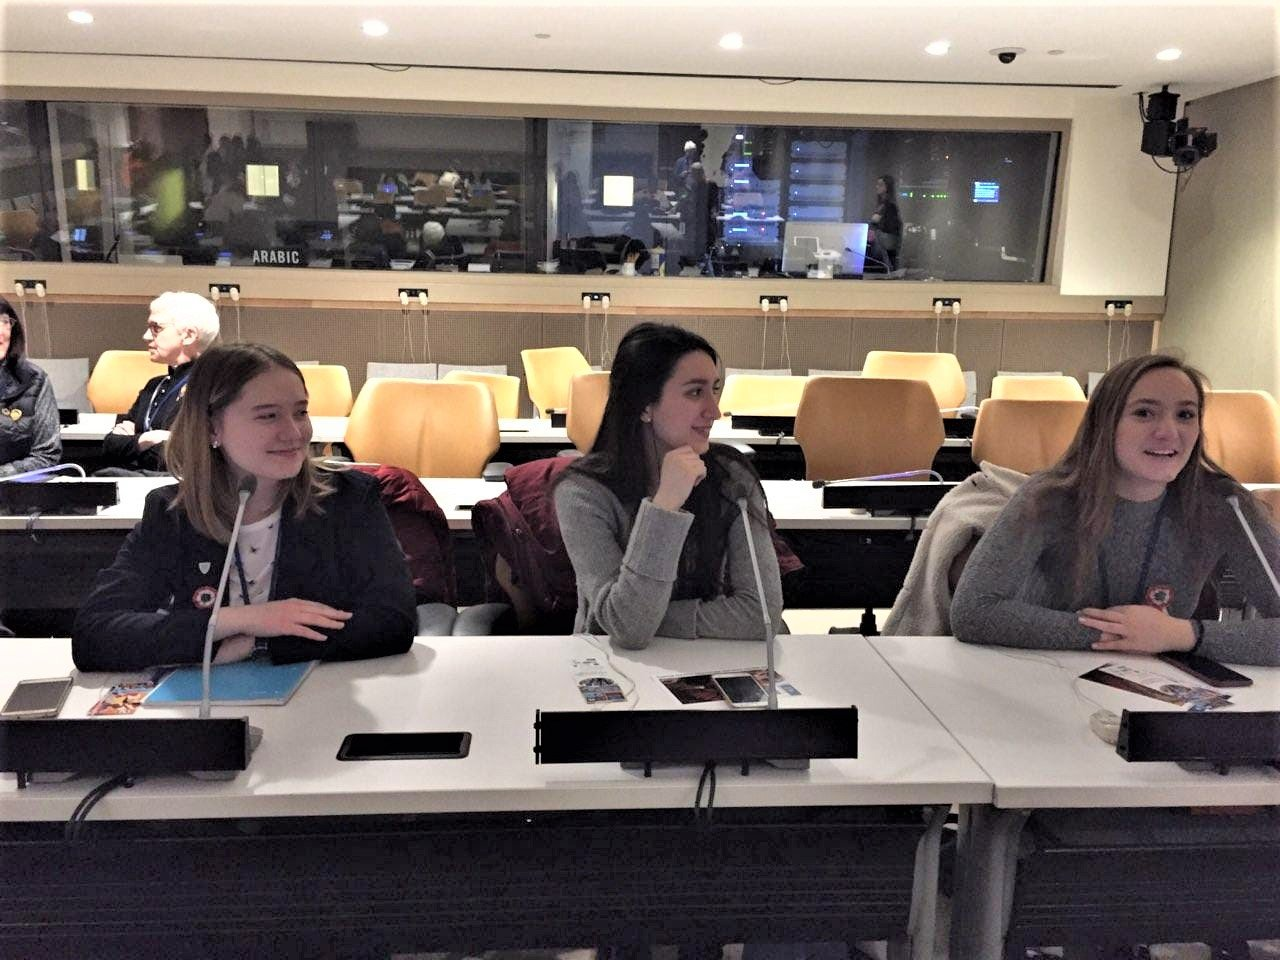 Mira tries out the equipment before a session at CSW63.